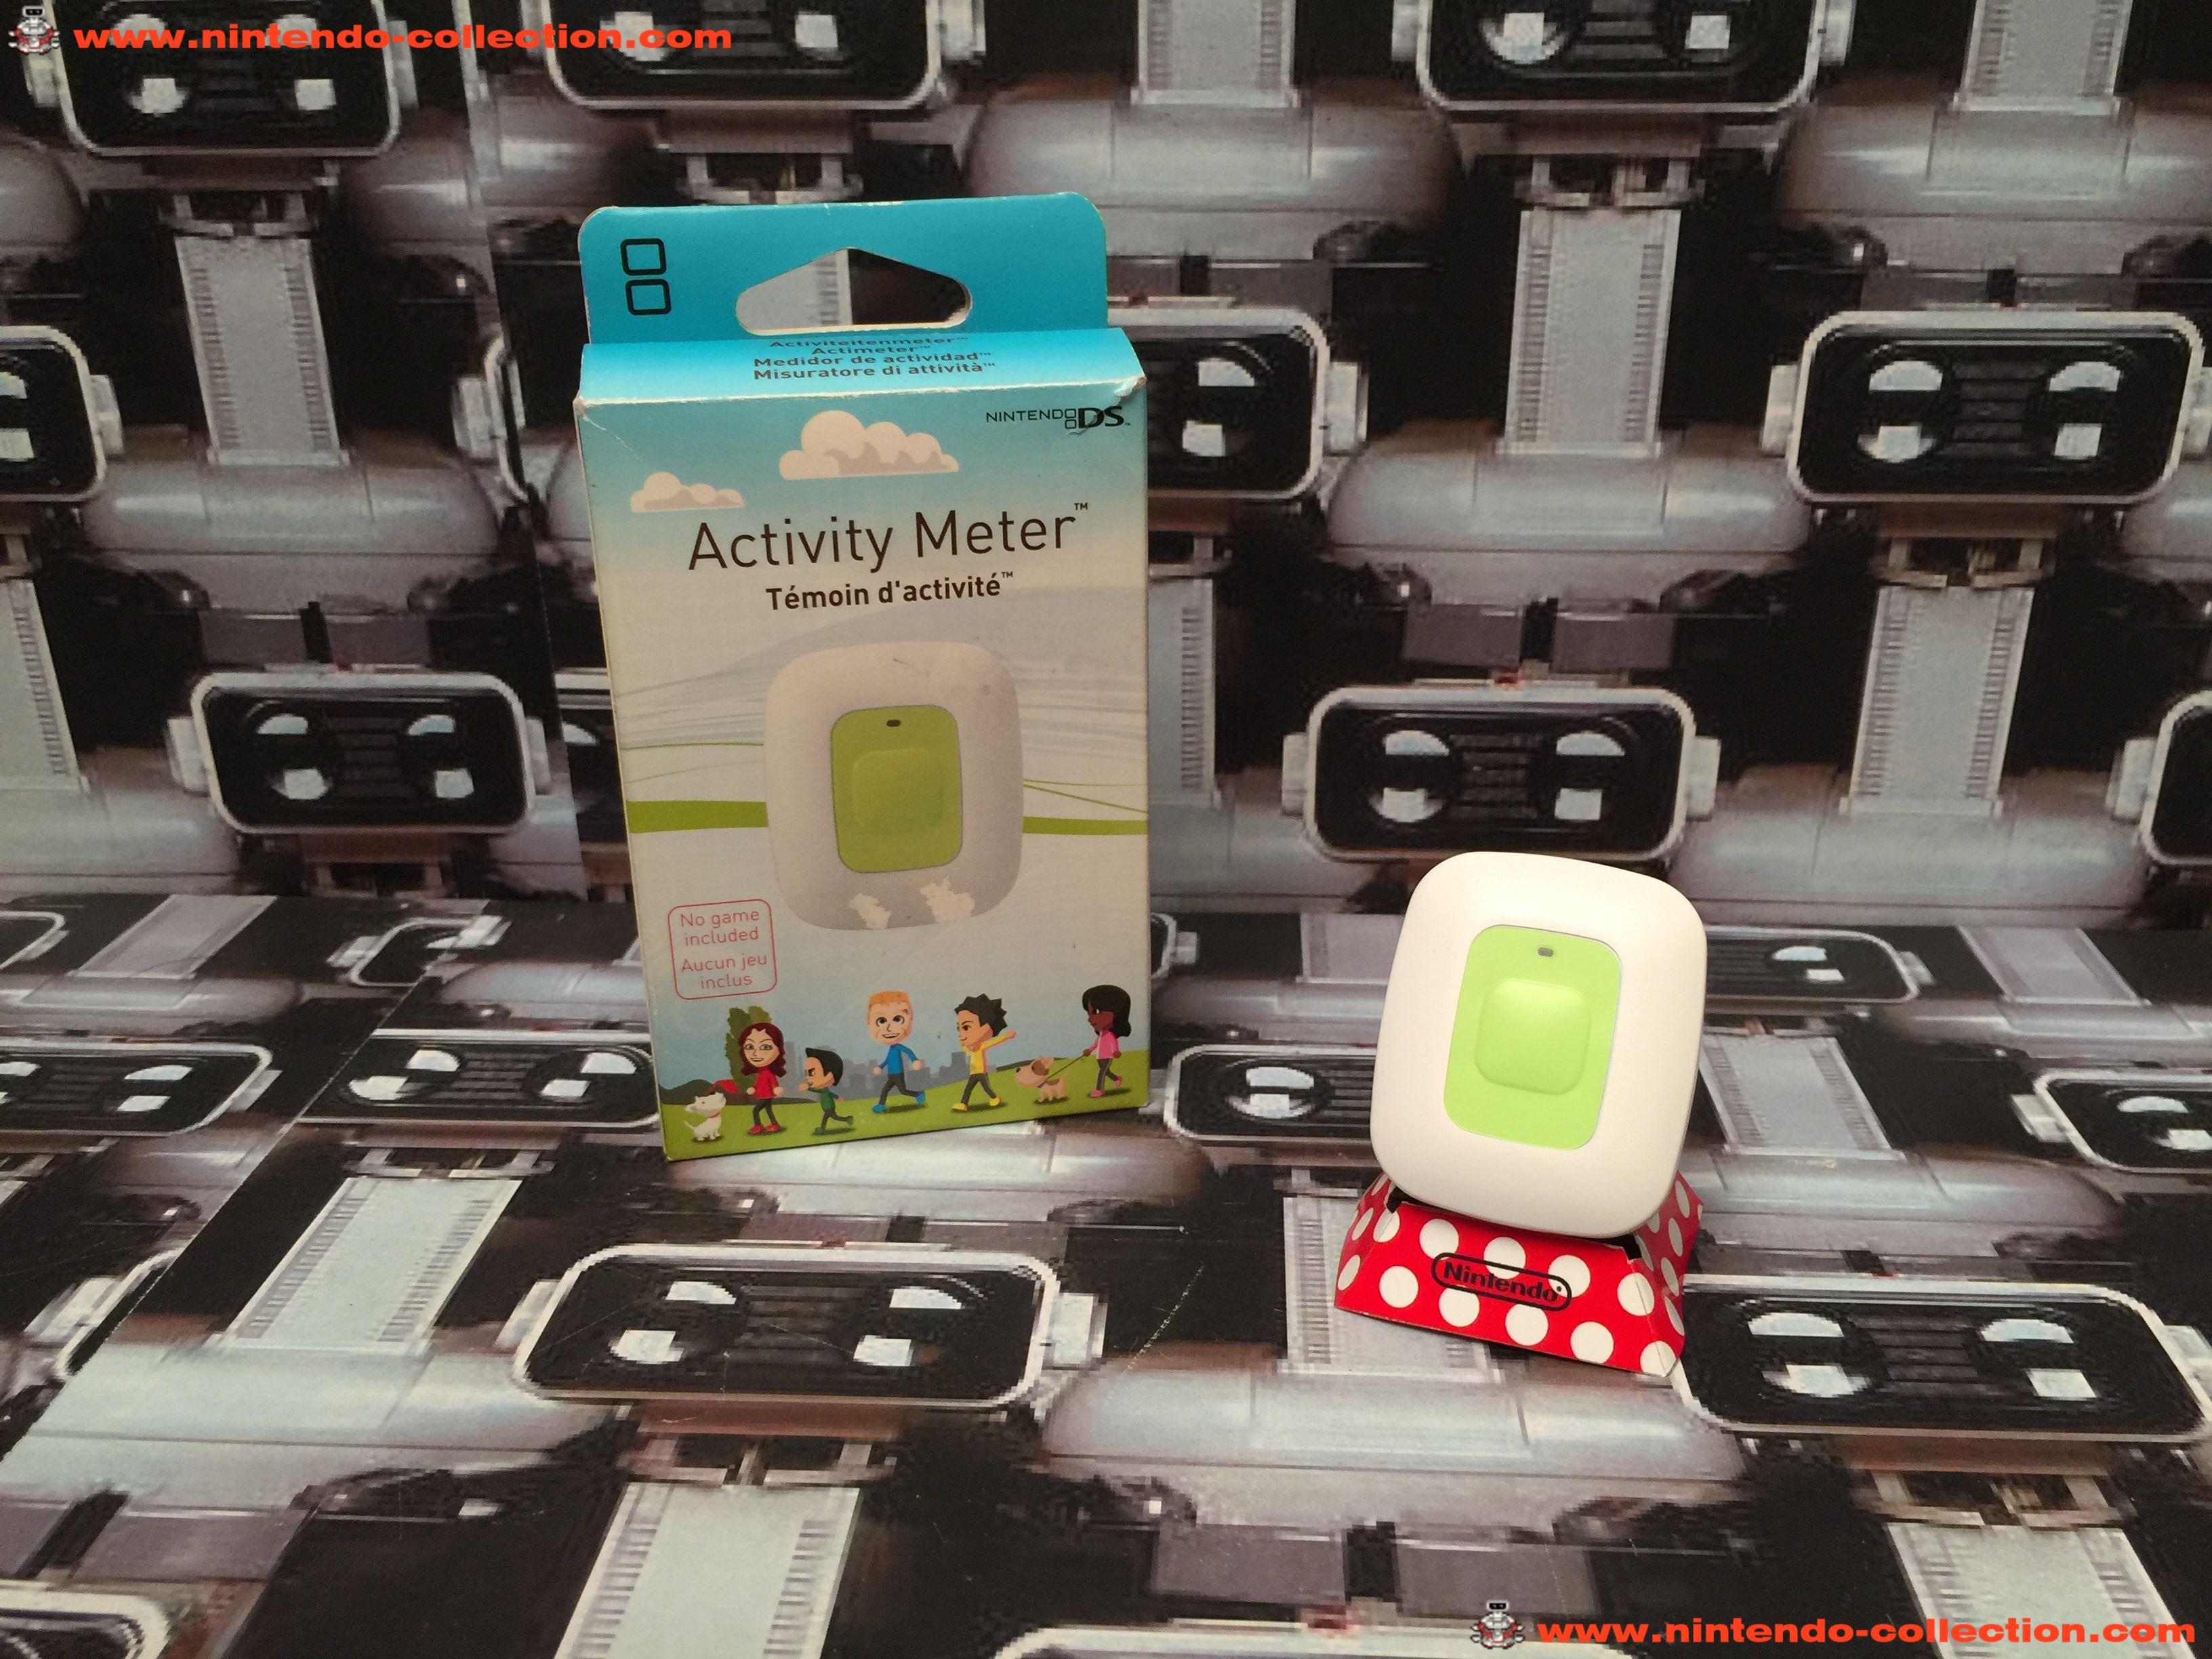 www.nintendo-collection.com - Nintendo DS Activity Meter Marche avec Moi vert blanc